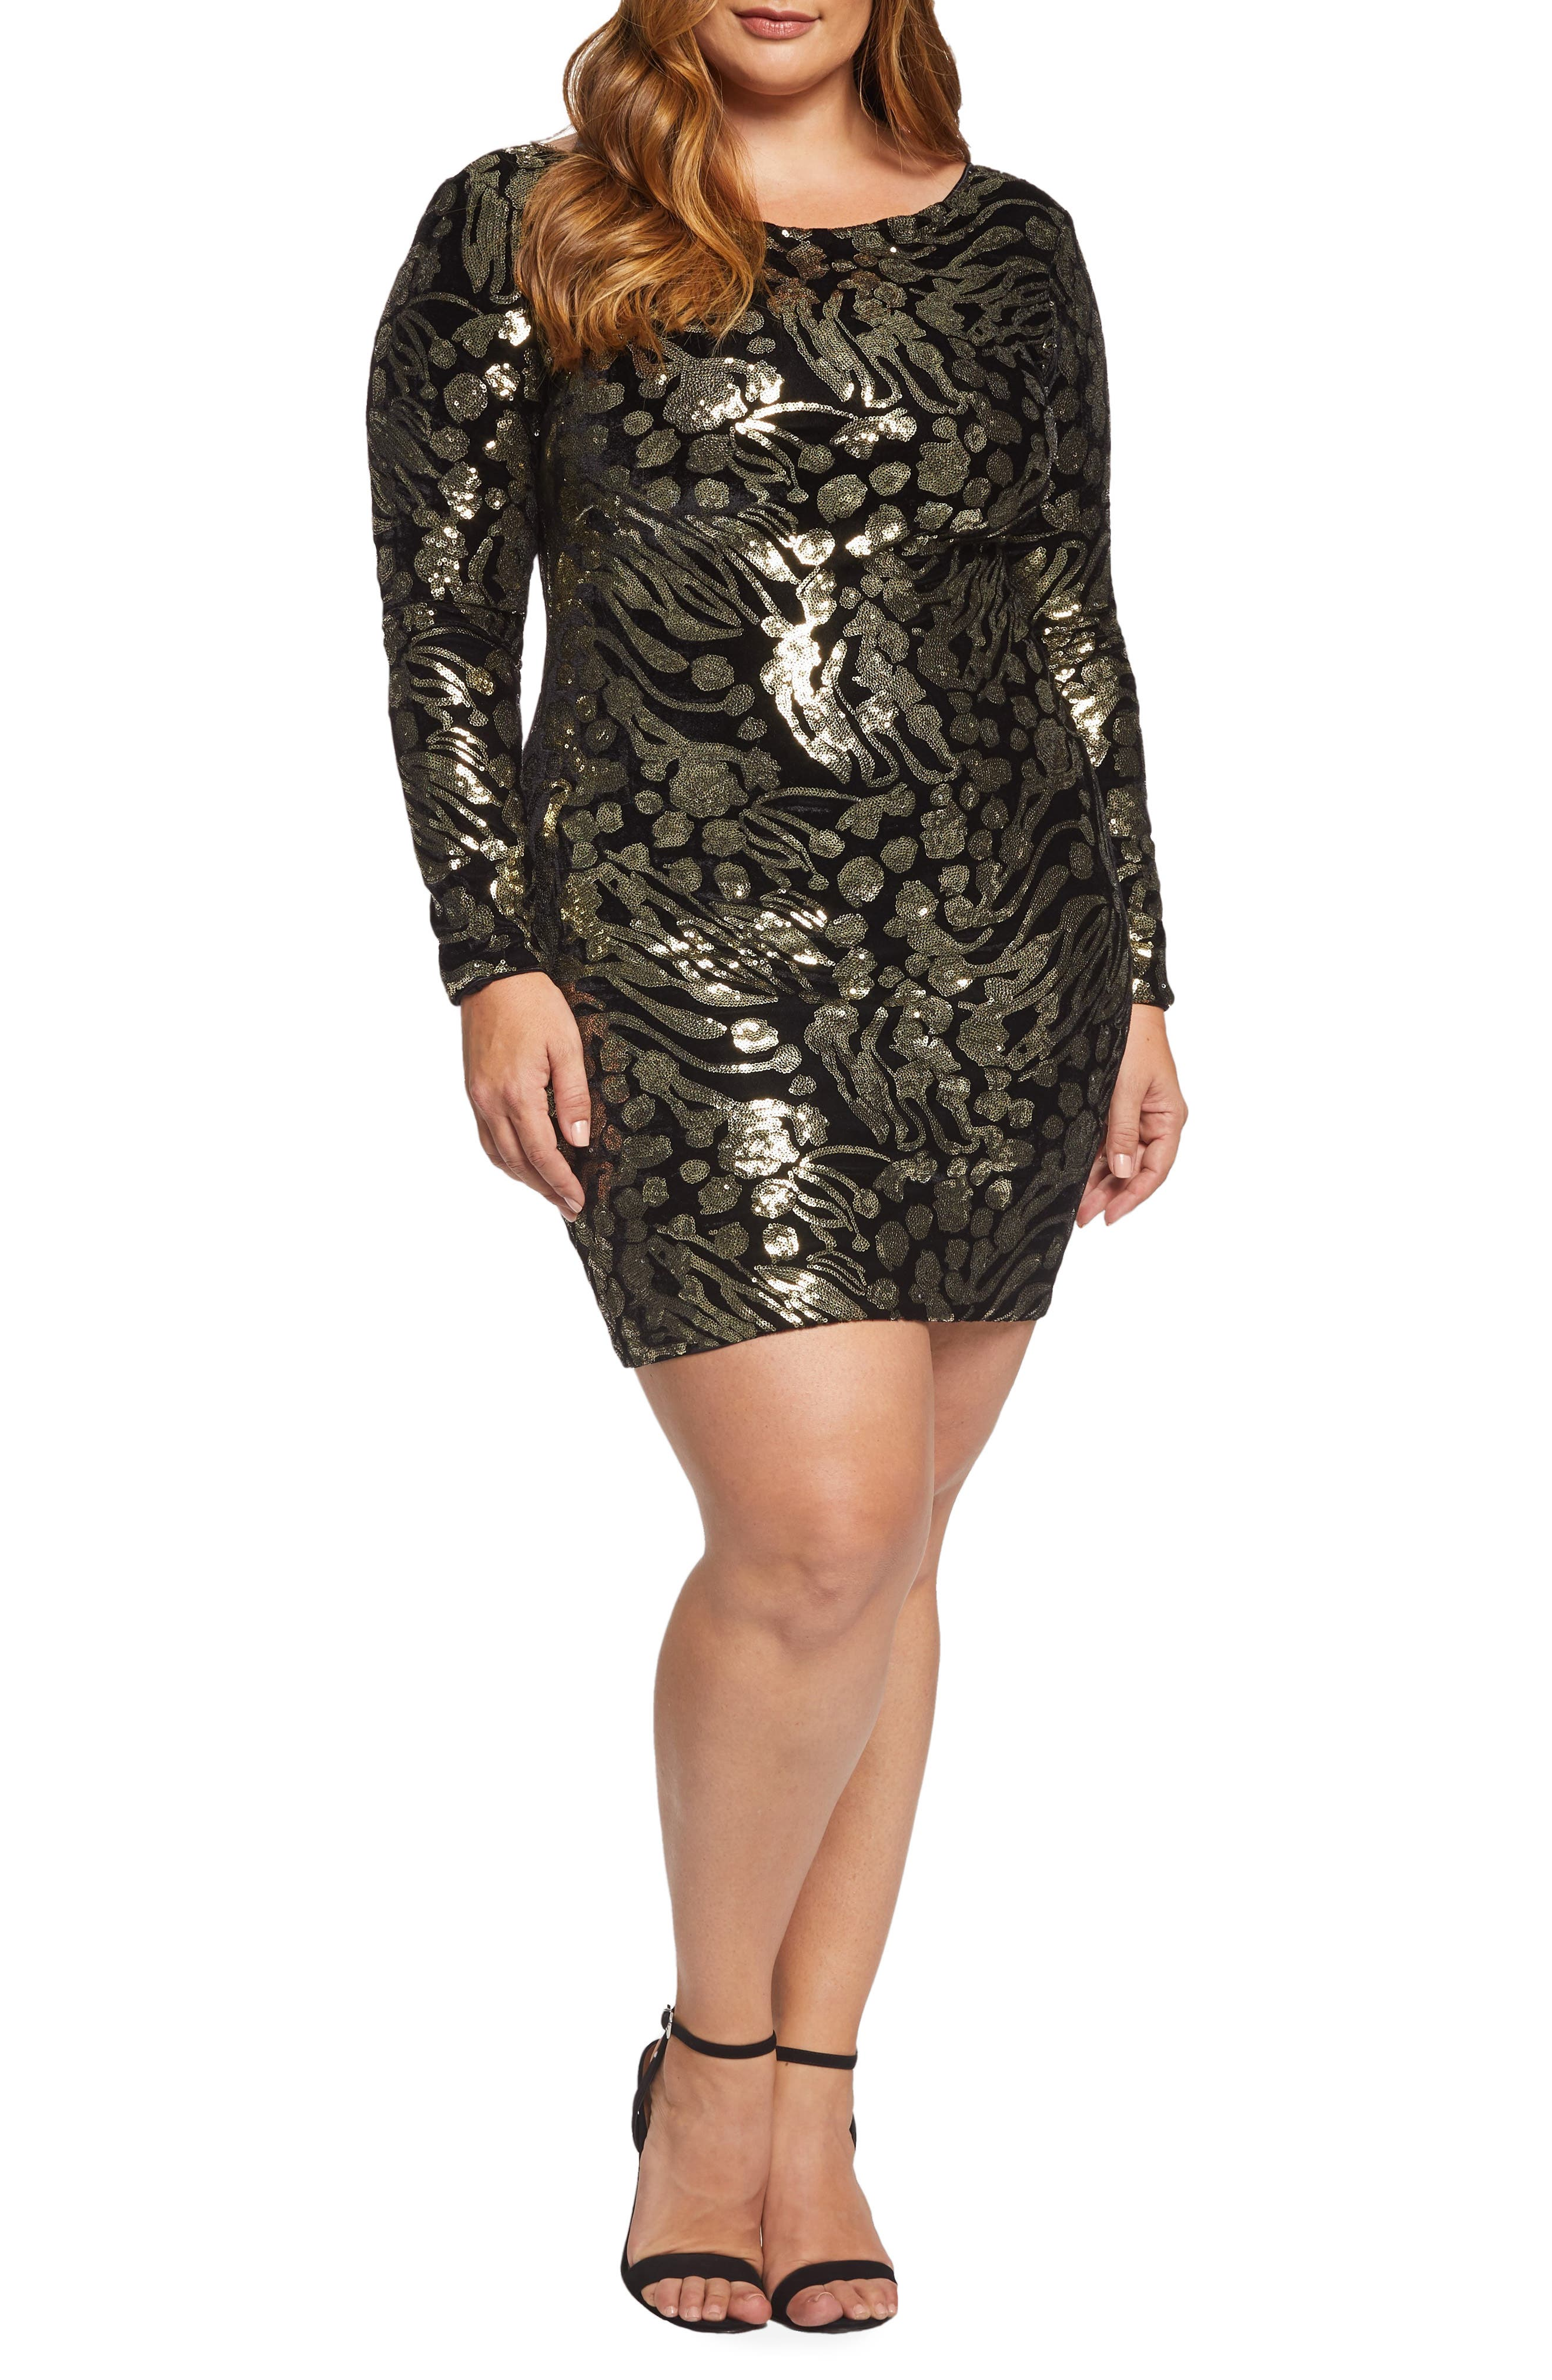 70s Prom, Formal, Evening, Party Dresses Plus Size Womens Dress The Population Lola Sequin  Velvet Minidress $216.00 AT vintagedancer.com